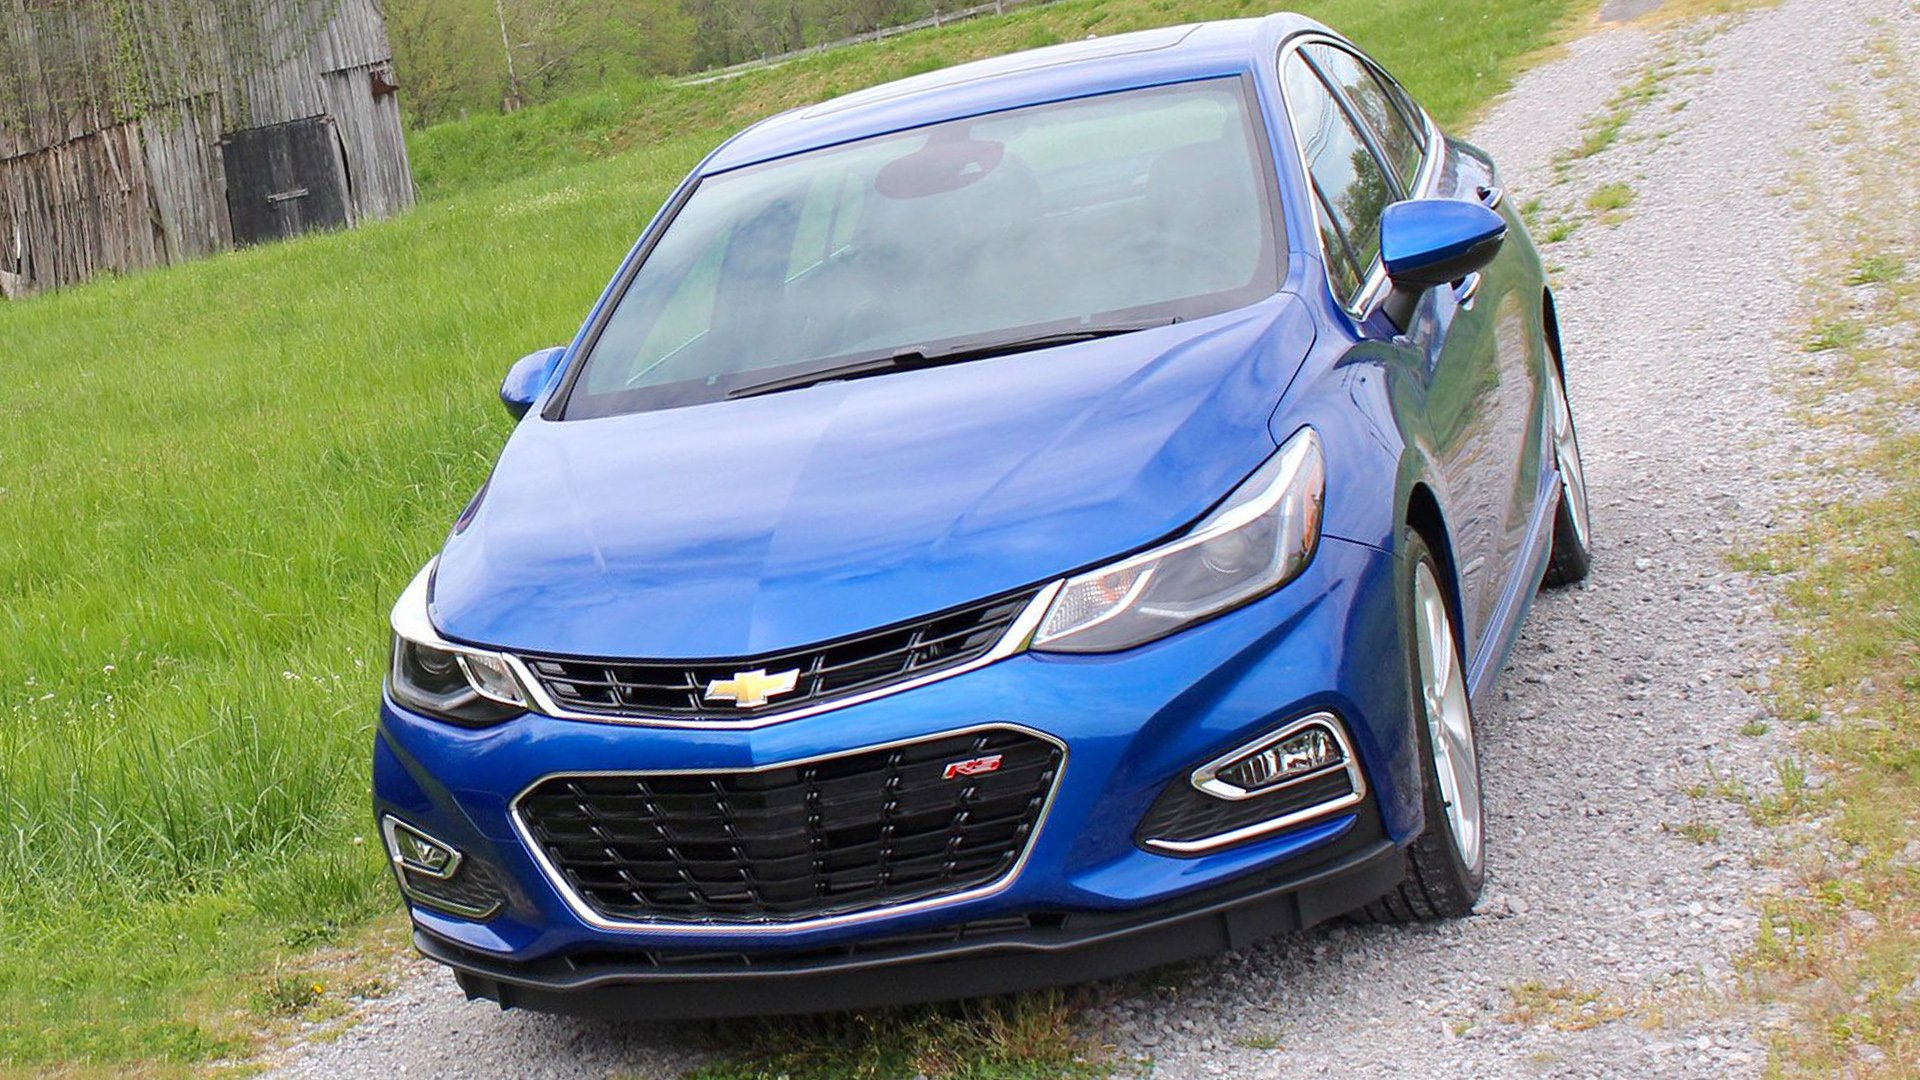 Chevrolet Cruze 2018 Model Redesign Full HD